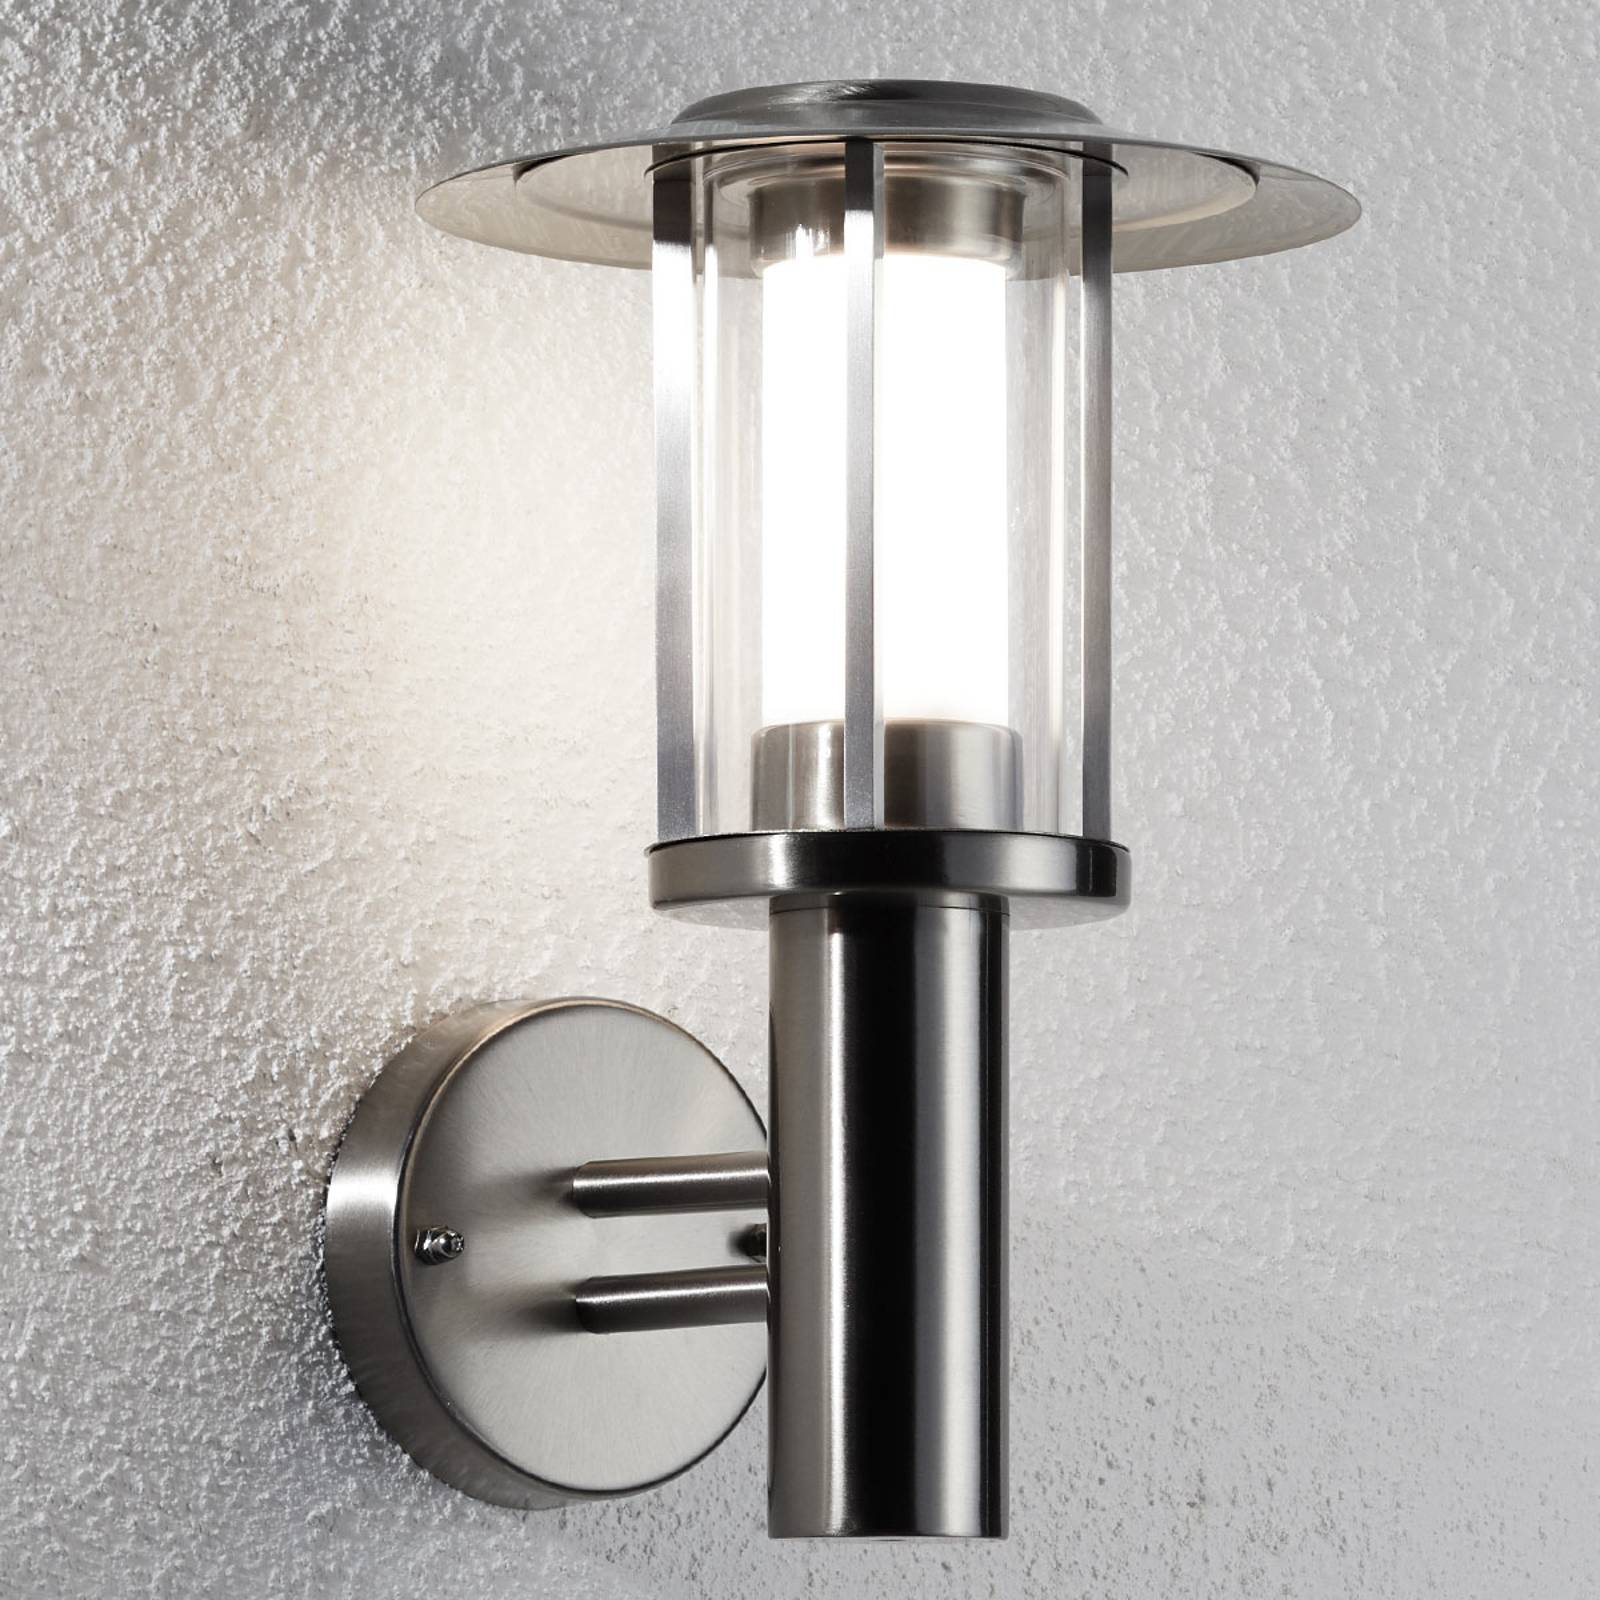 LED outdoor wall lamp Gregory stainless steel from Lindby